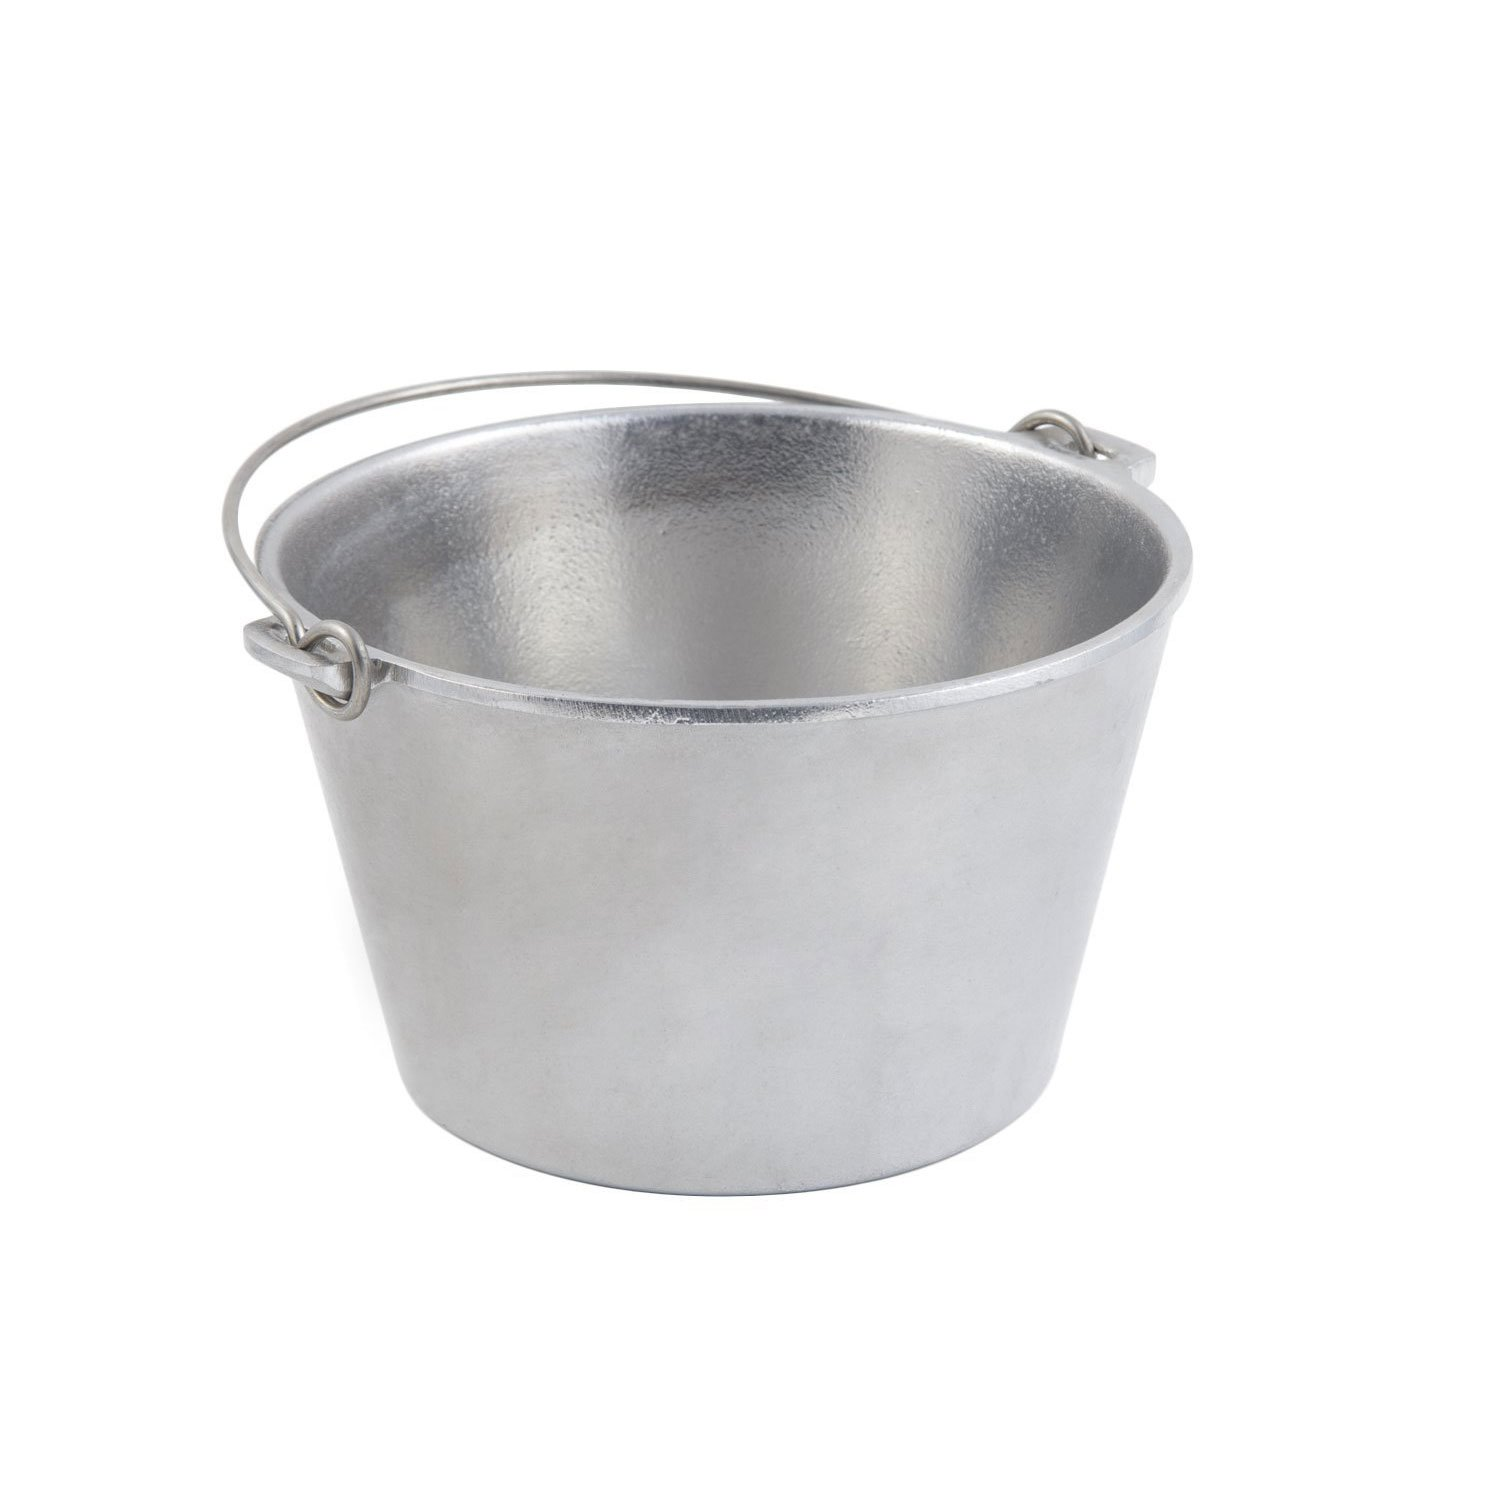 3 qt 9 dia. x 5 1/2 H inch Soup Kettle with Bail Handle Pewter Glo